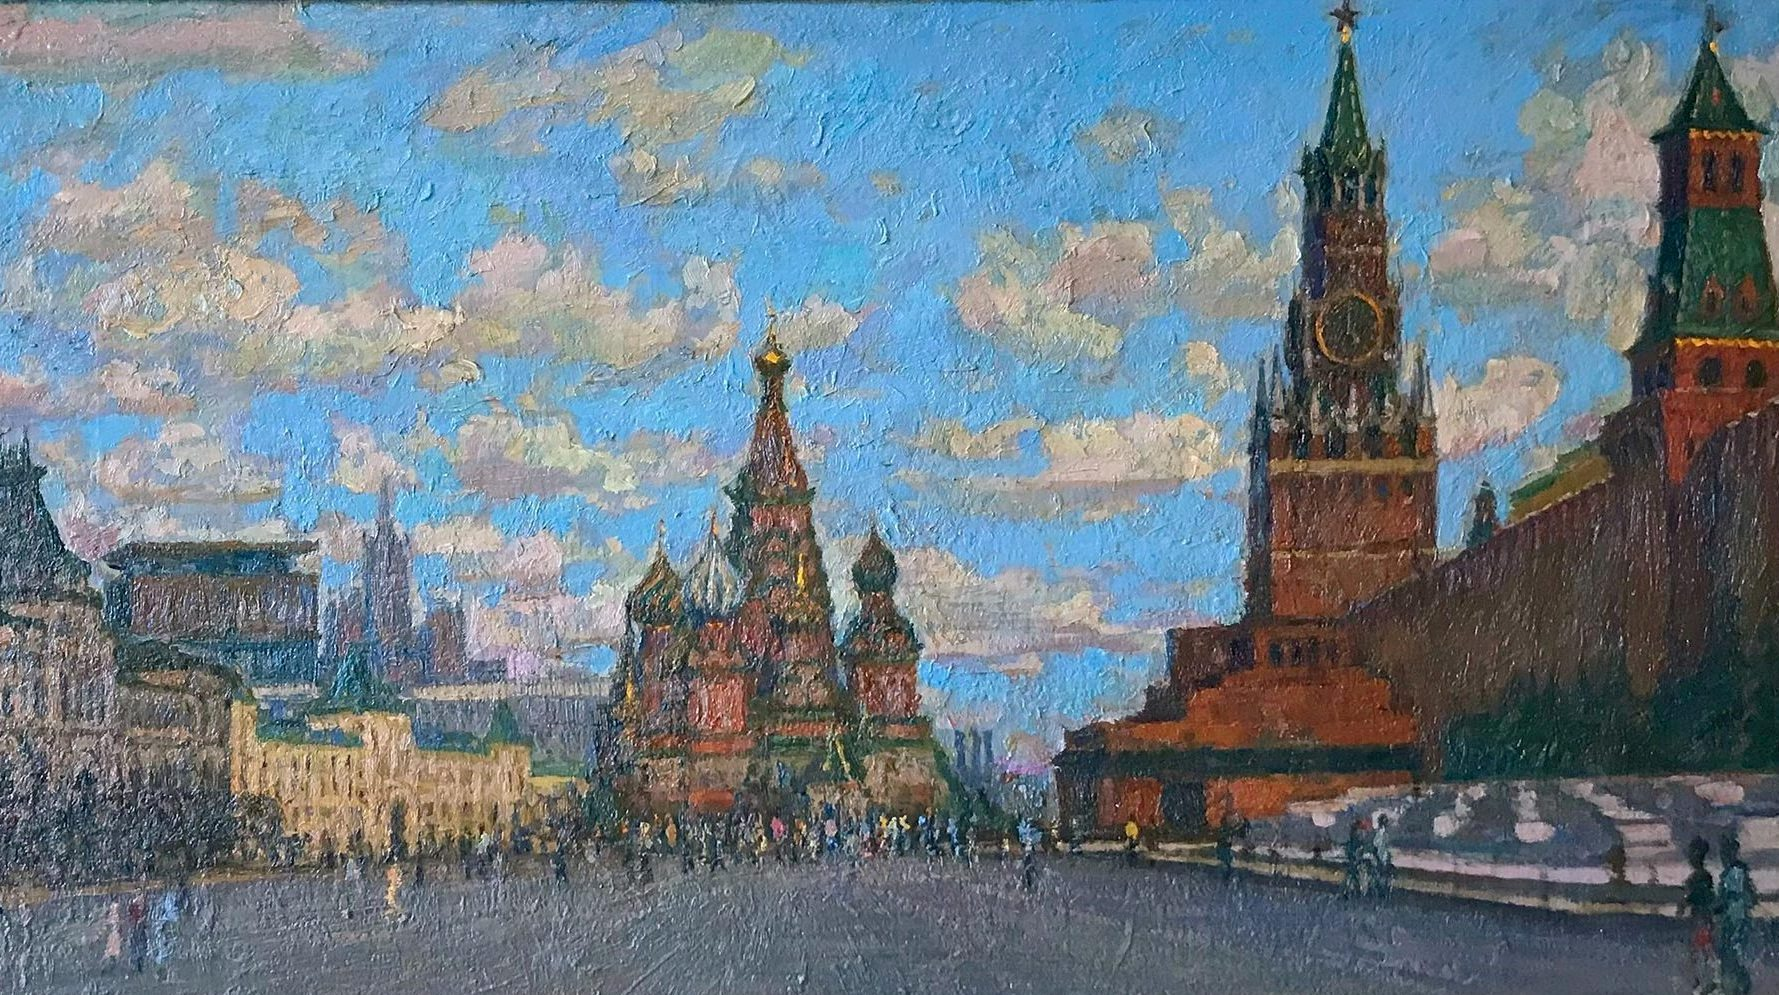 On the Red Square.